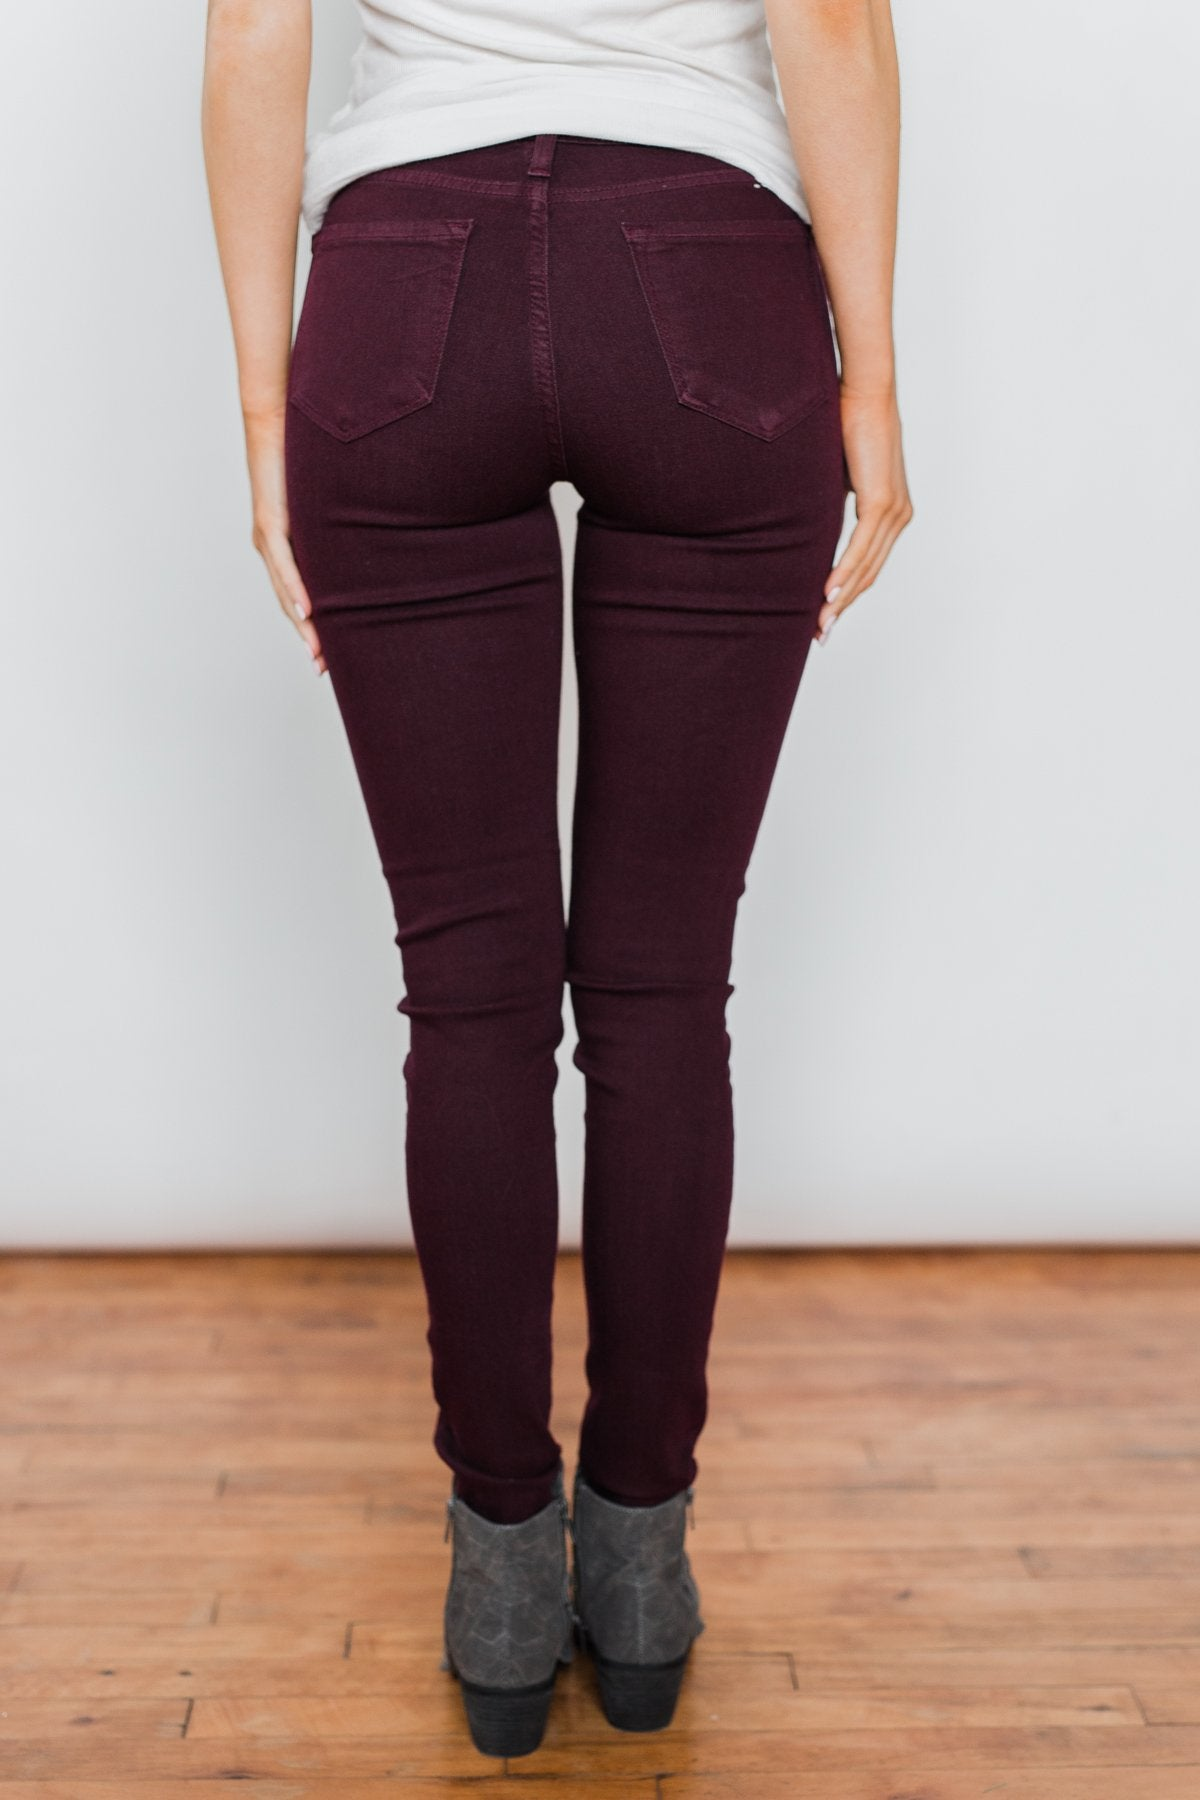 Kan Can Non-Distressed Skinny Jeans- Deep Burgundy